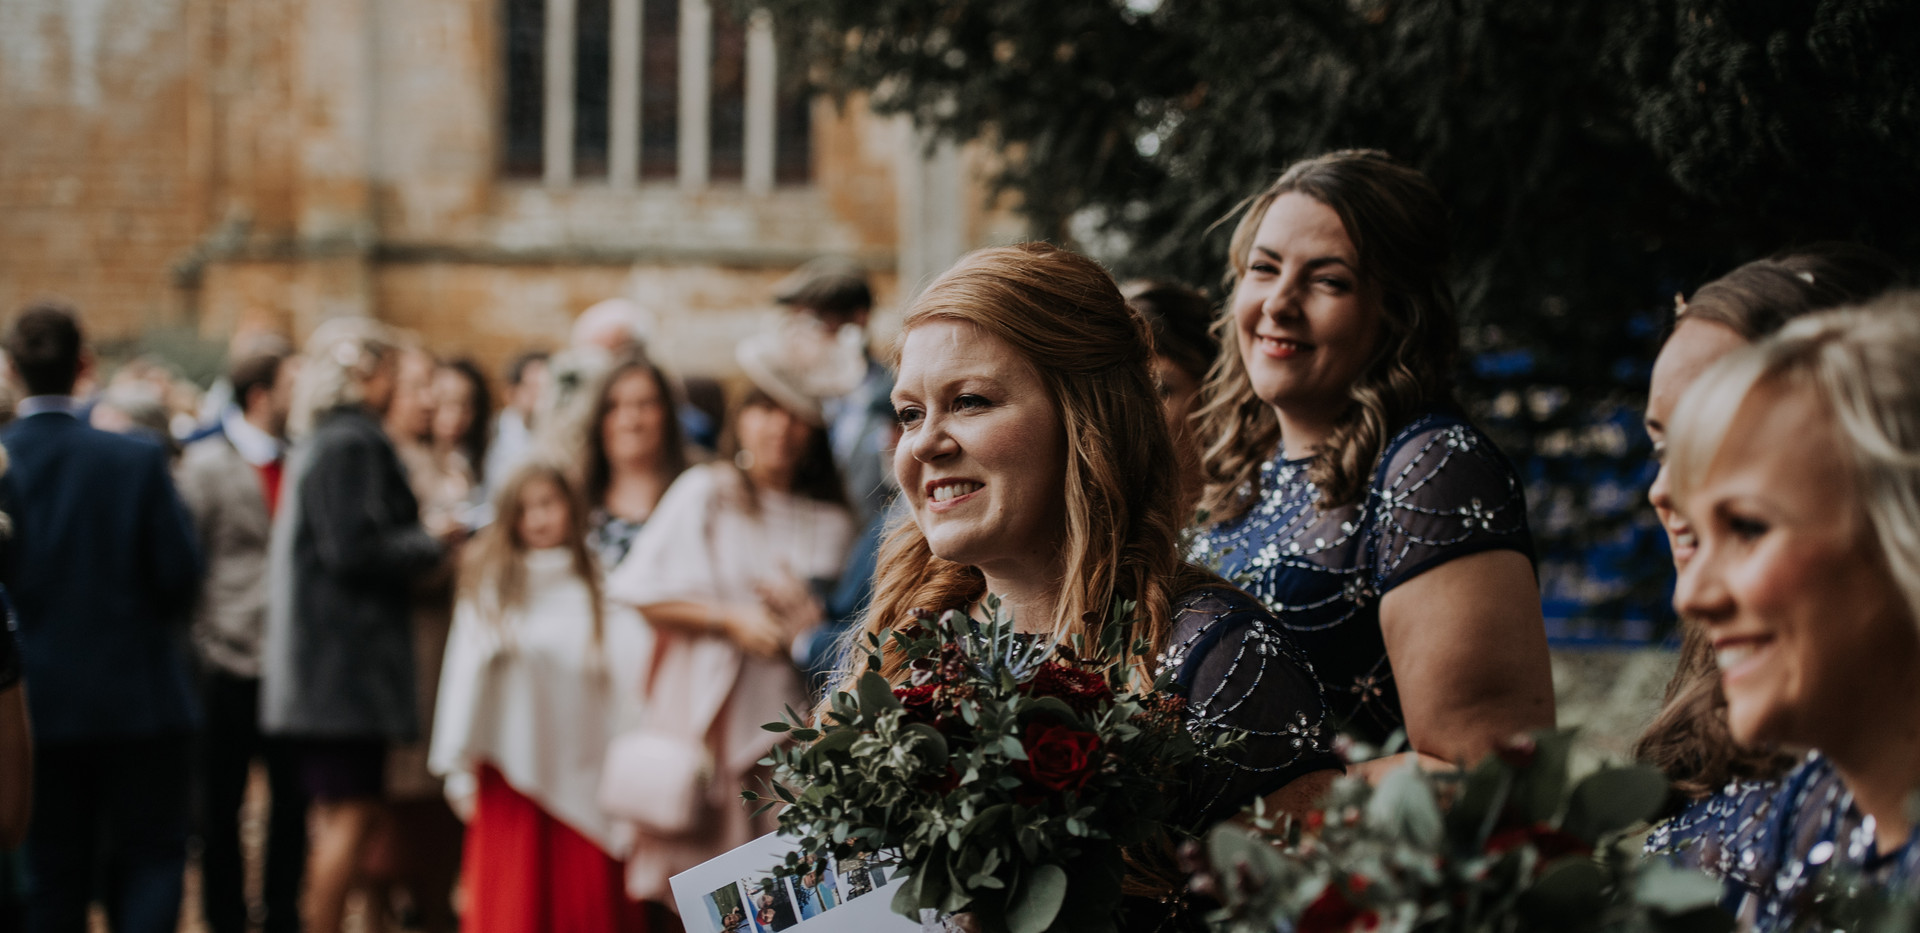 wedding guests smiling